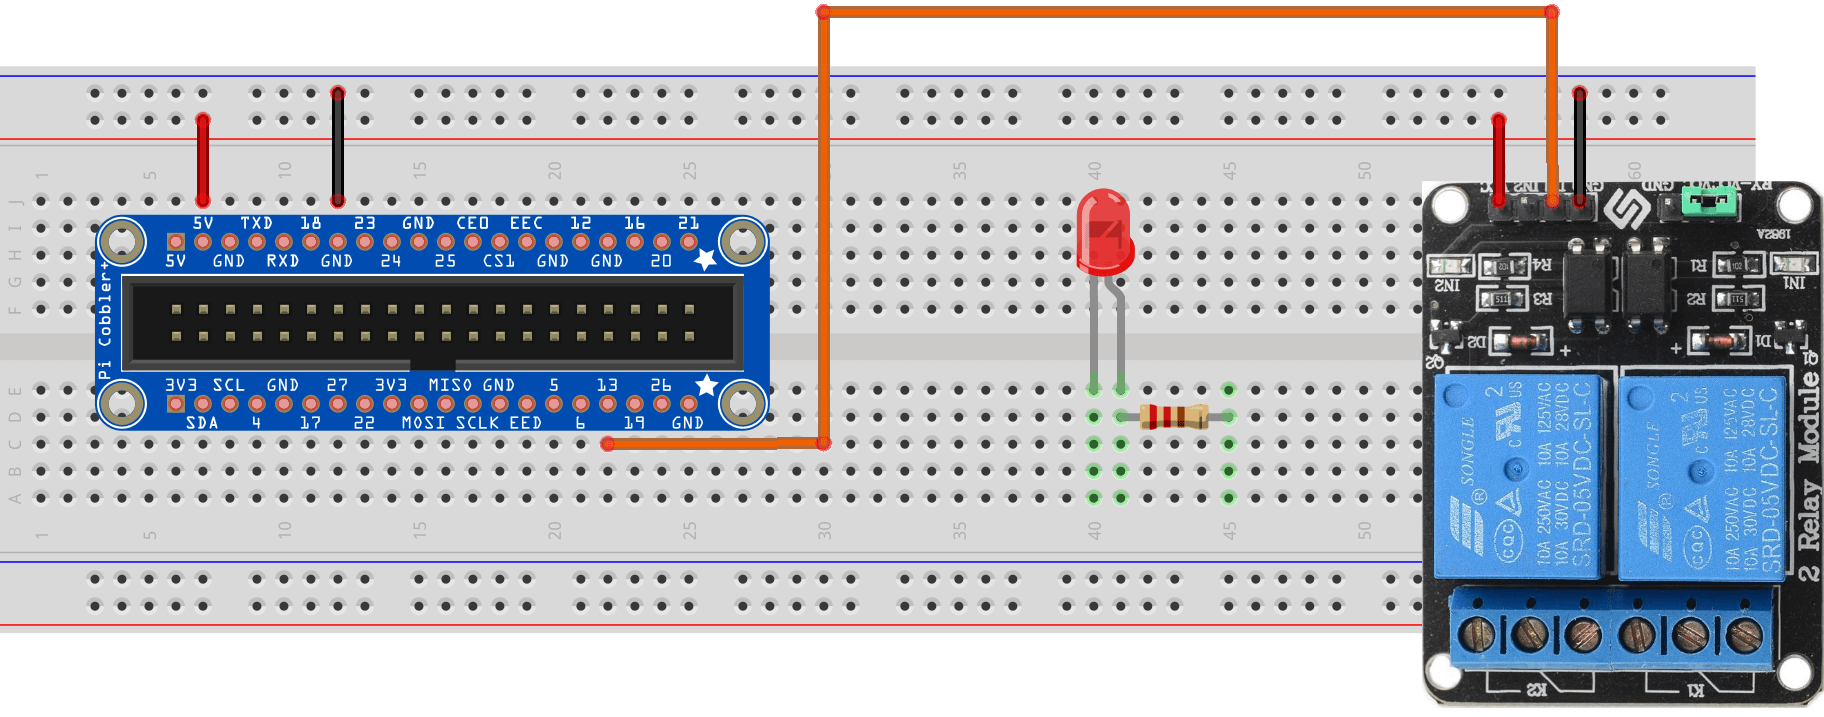 Tutorial Cayenne Mydevices Raspberry Pi Relay Wiring Diagram Step 3 Connect Gpio 13 On The Cobbler To In1 Pin Switch You Can Use Other Pins Weve Simply Chosen For This Example